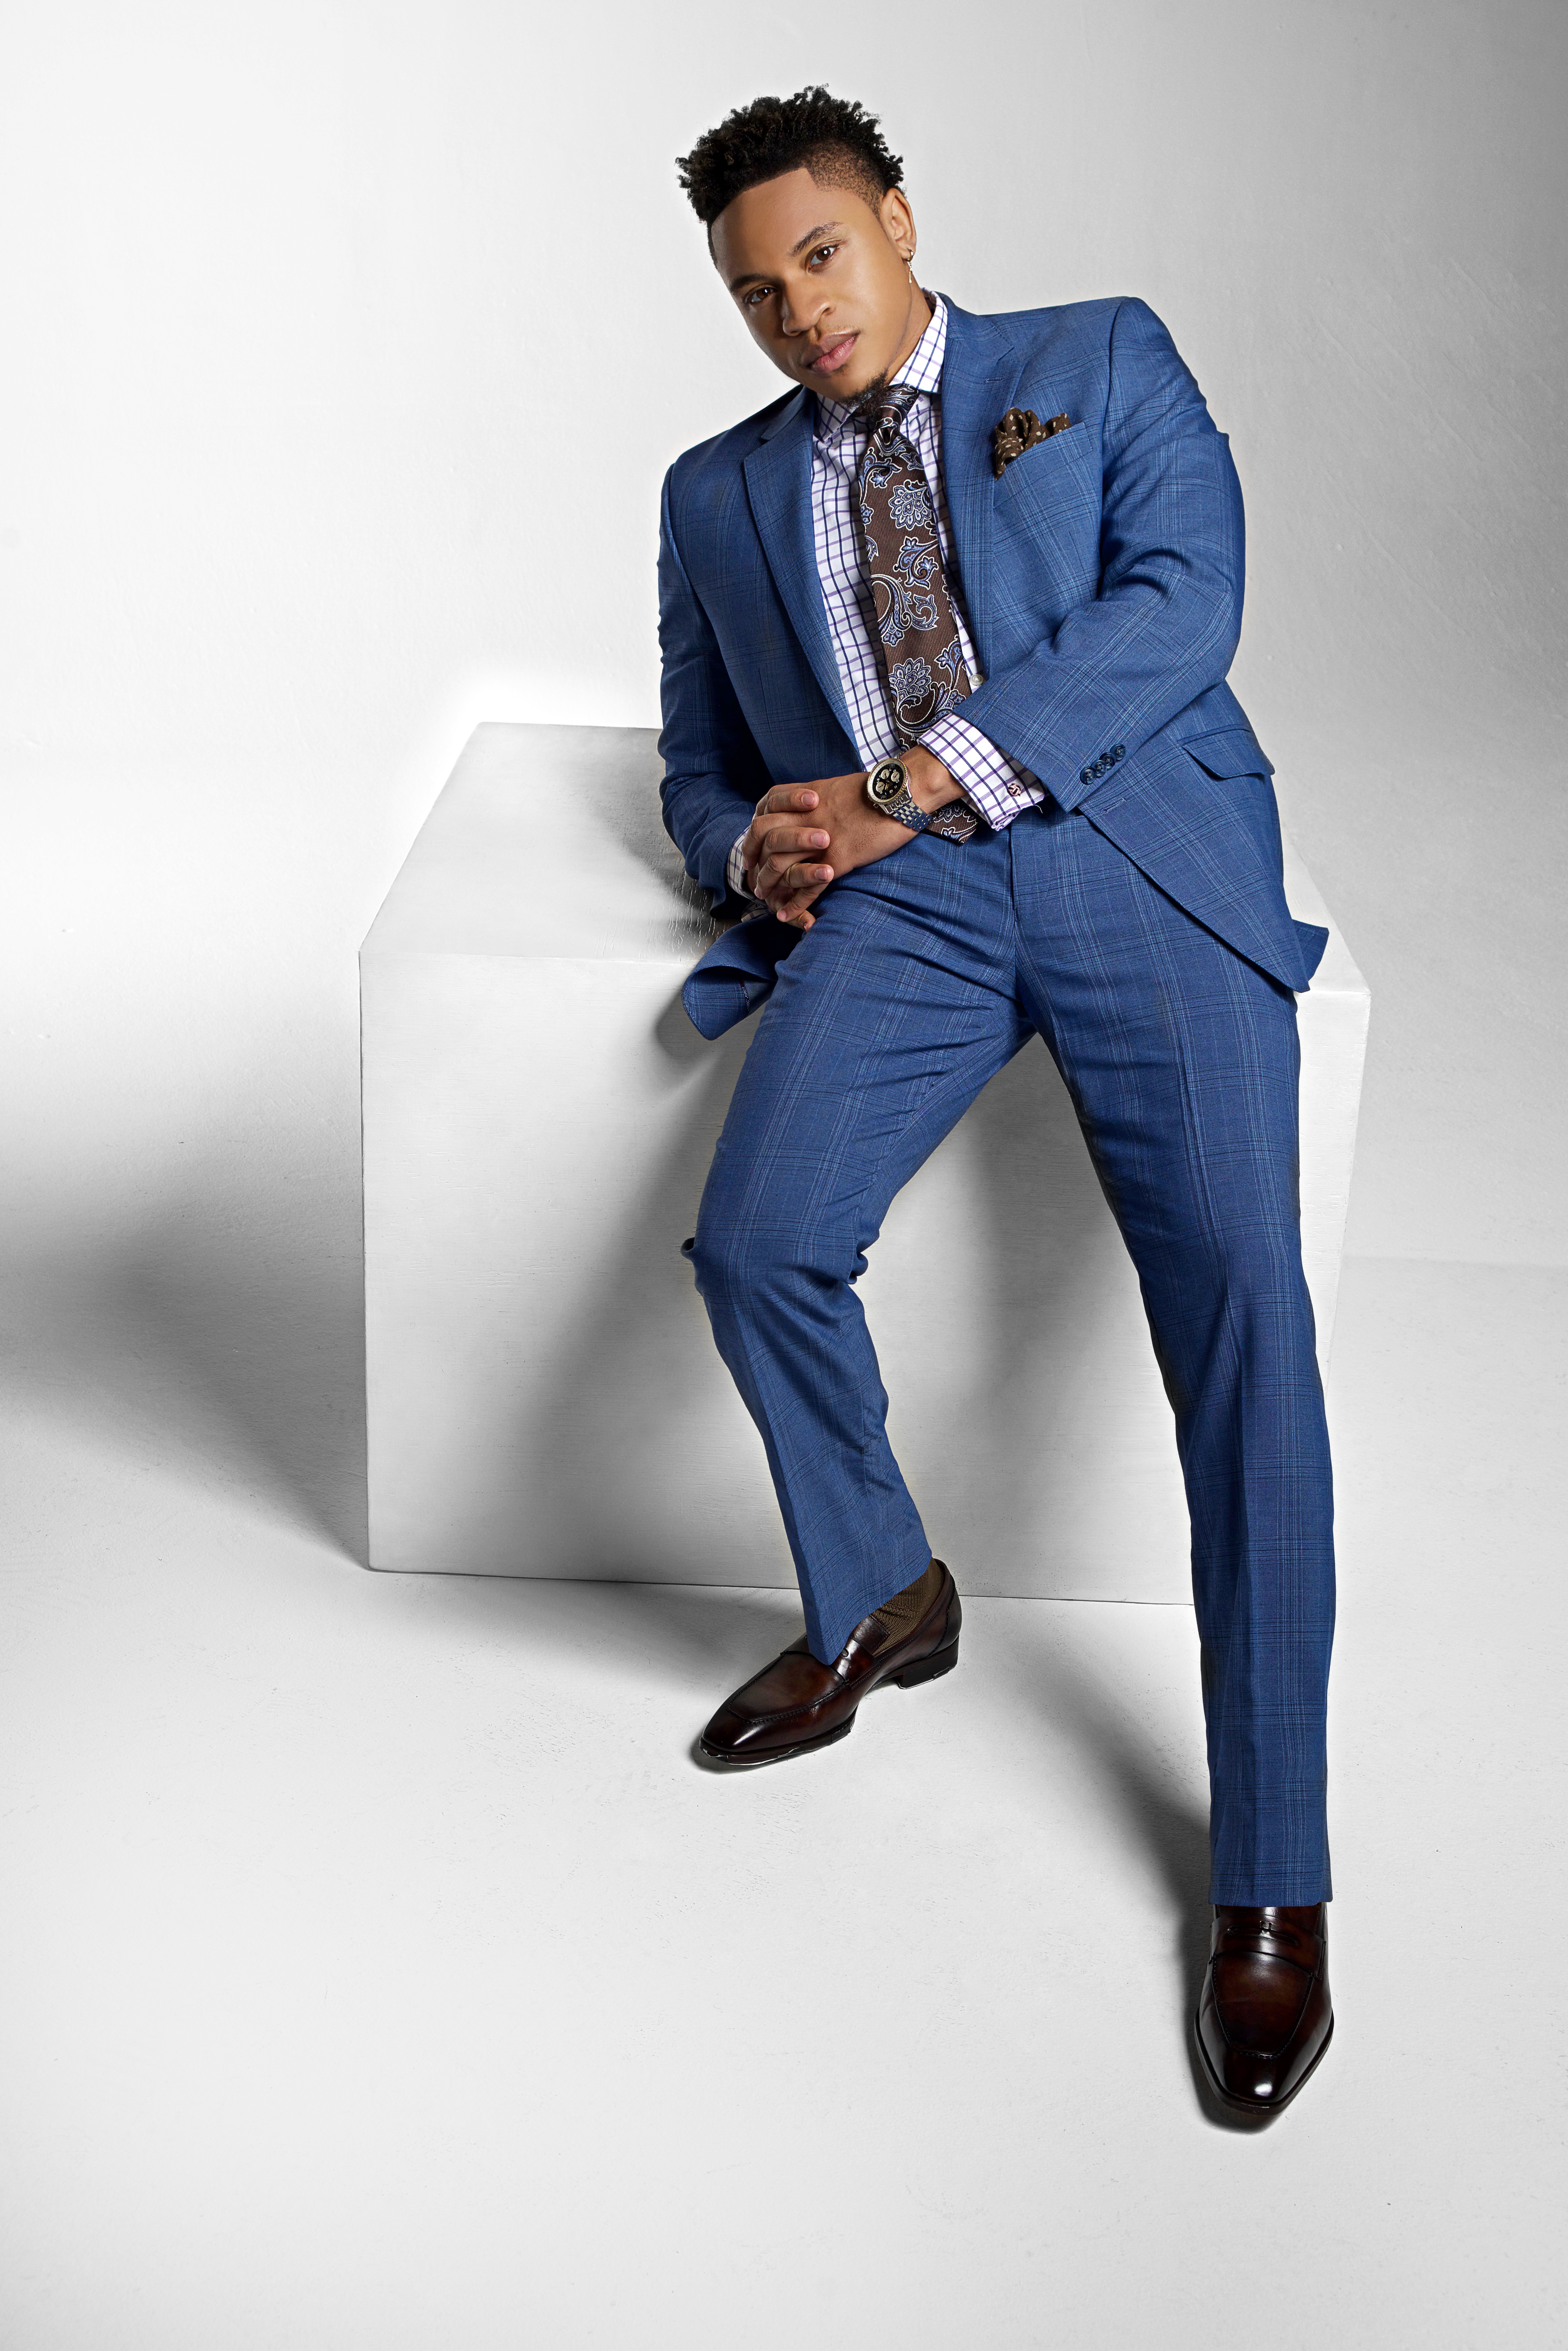 Rotimi is the New Face of Sean John's S/S 2020 Tailored Suit Campaign